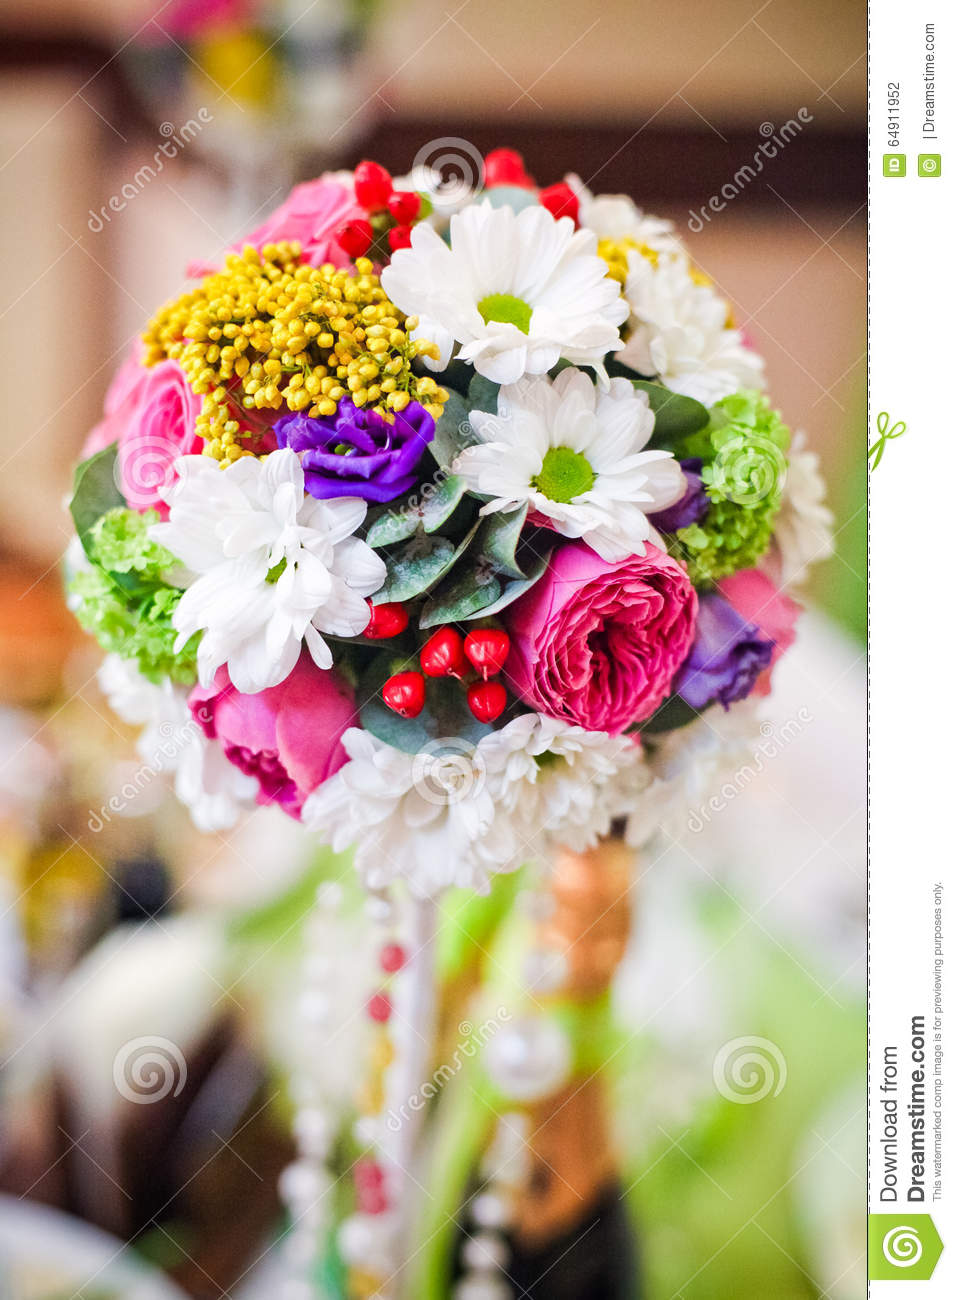 Wedding Flowers Roses And Daisies Bright On The Table Stock Photo